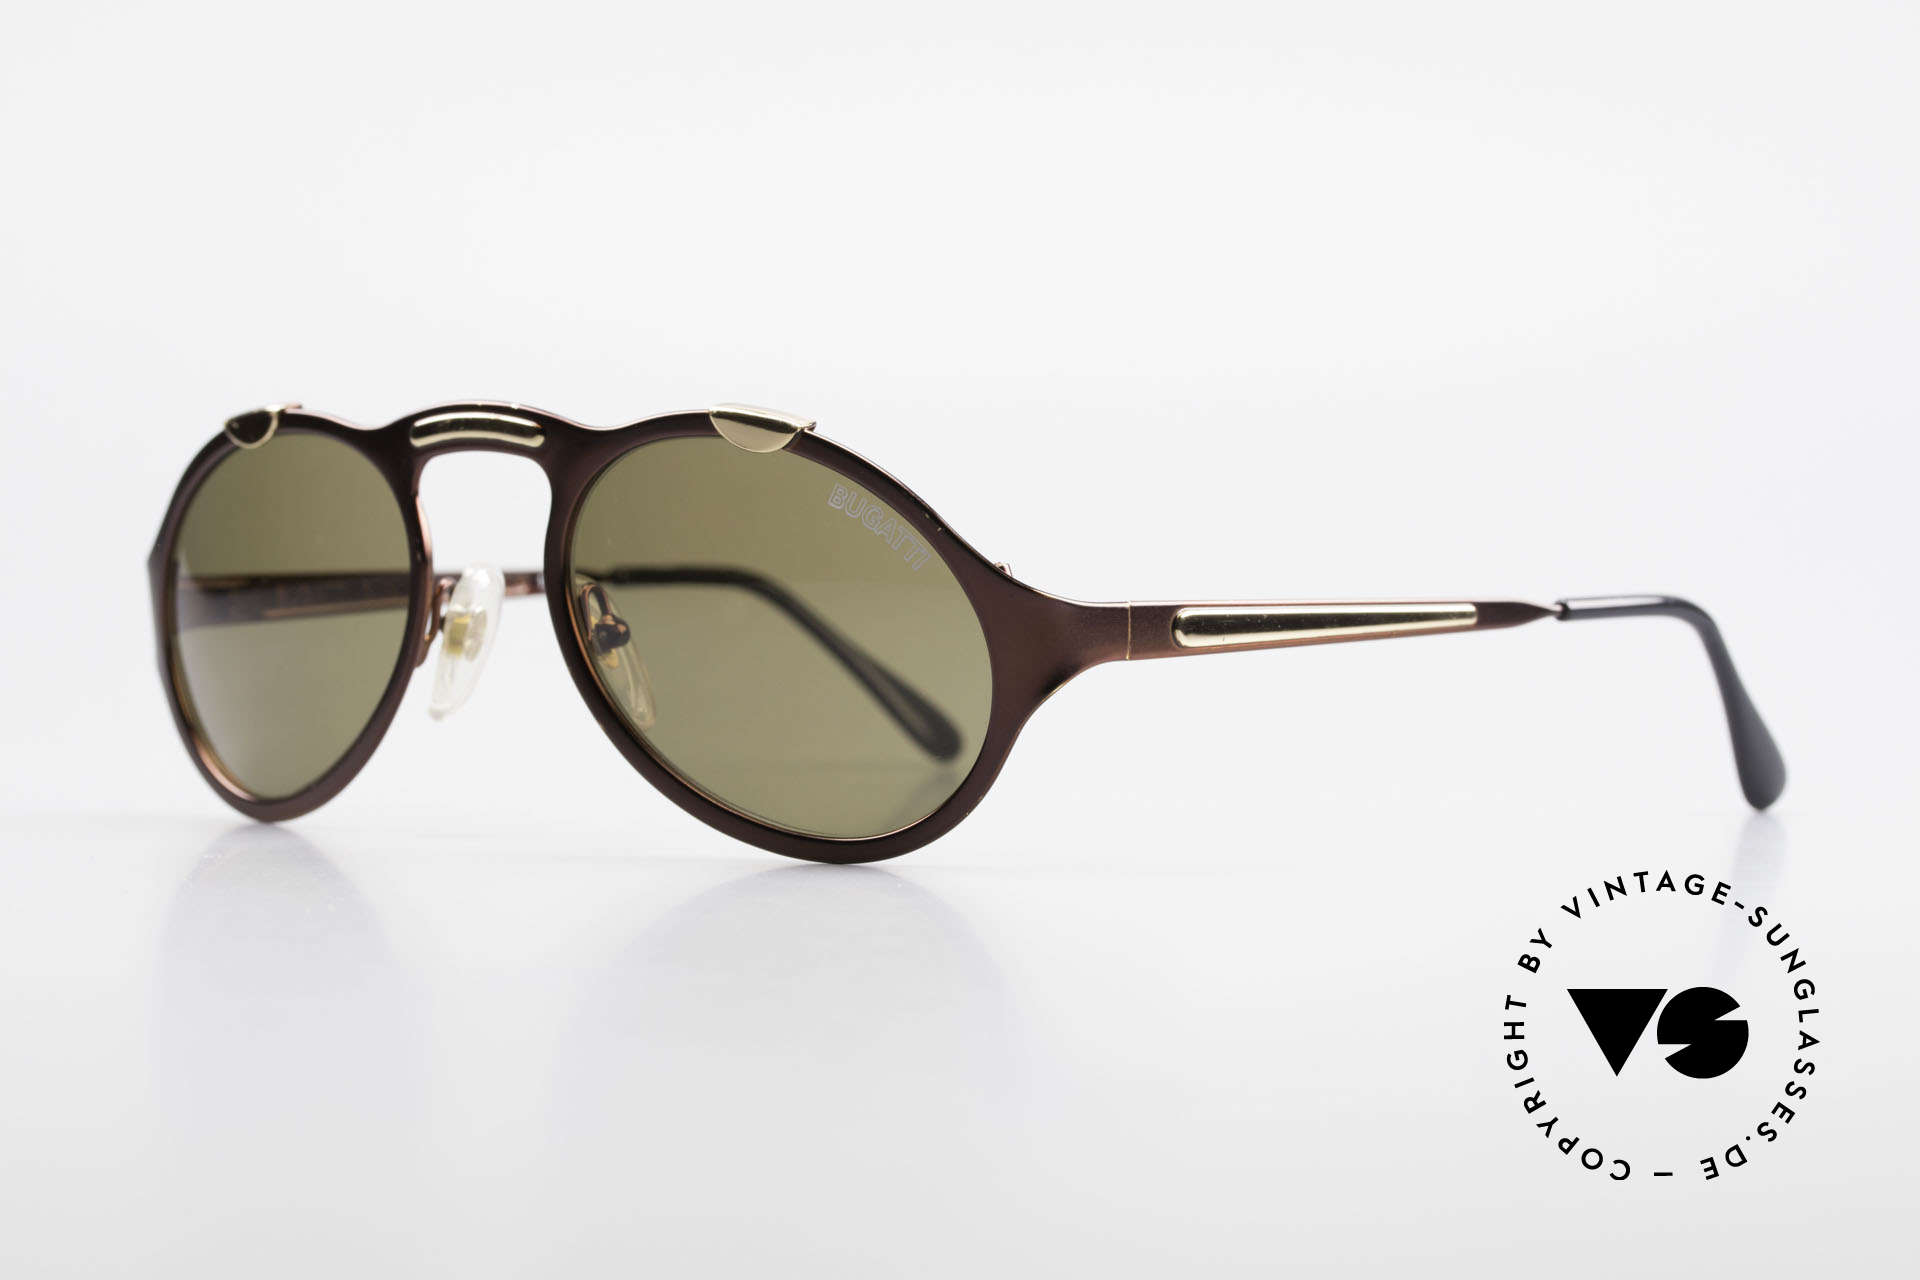 Bugatti 13169 Limited Old Collector's Sunglasses, limited edition (with Bugatti lettering on left lens), Made for Men